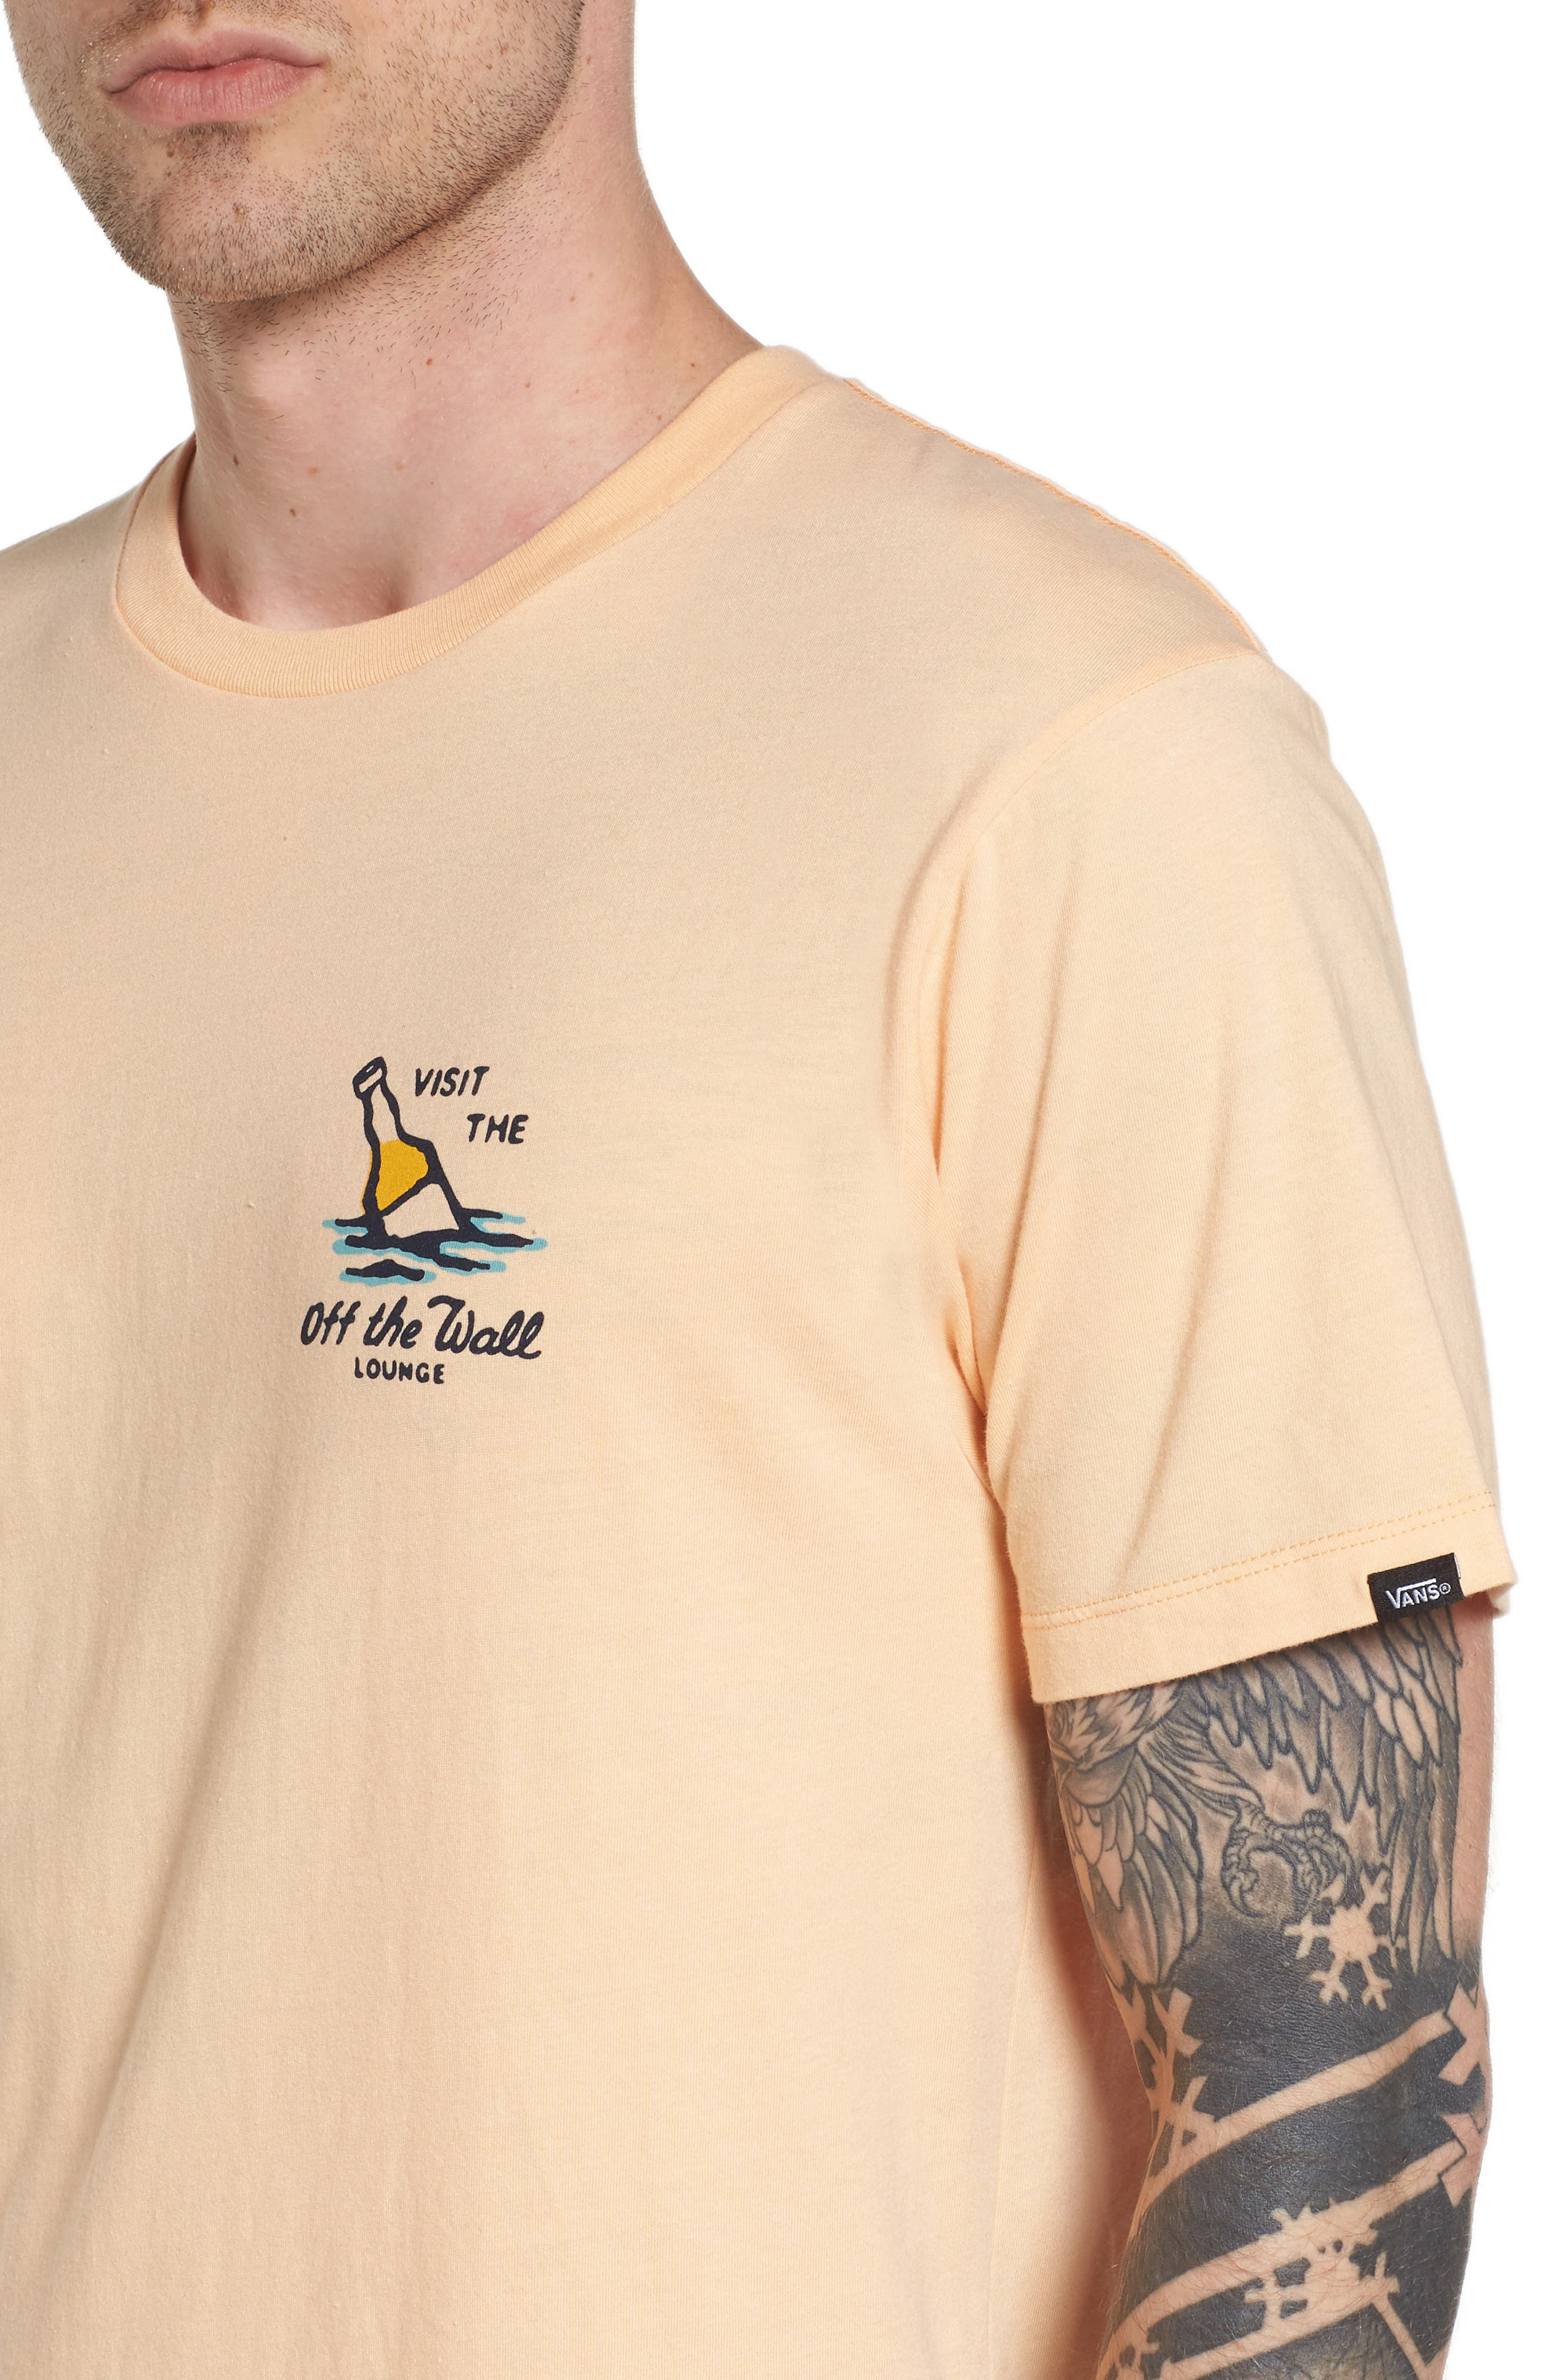 Off the Wall Lounge T-Shirt,                             Alternate thumbnail 4, color,                             Apricot Ice